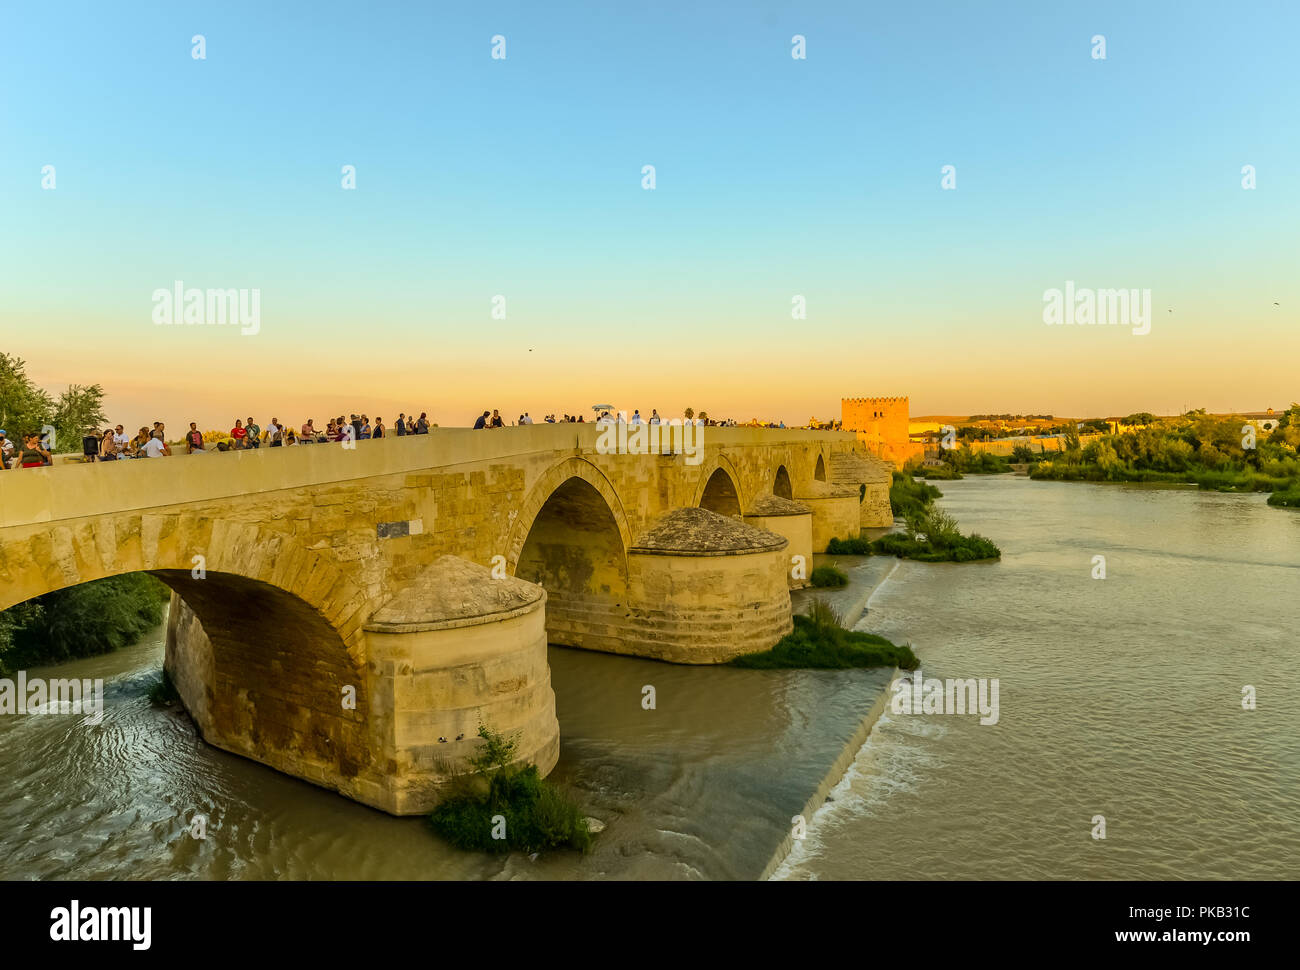 The Roman bridge in Cordoba - Spain Stock Photo